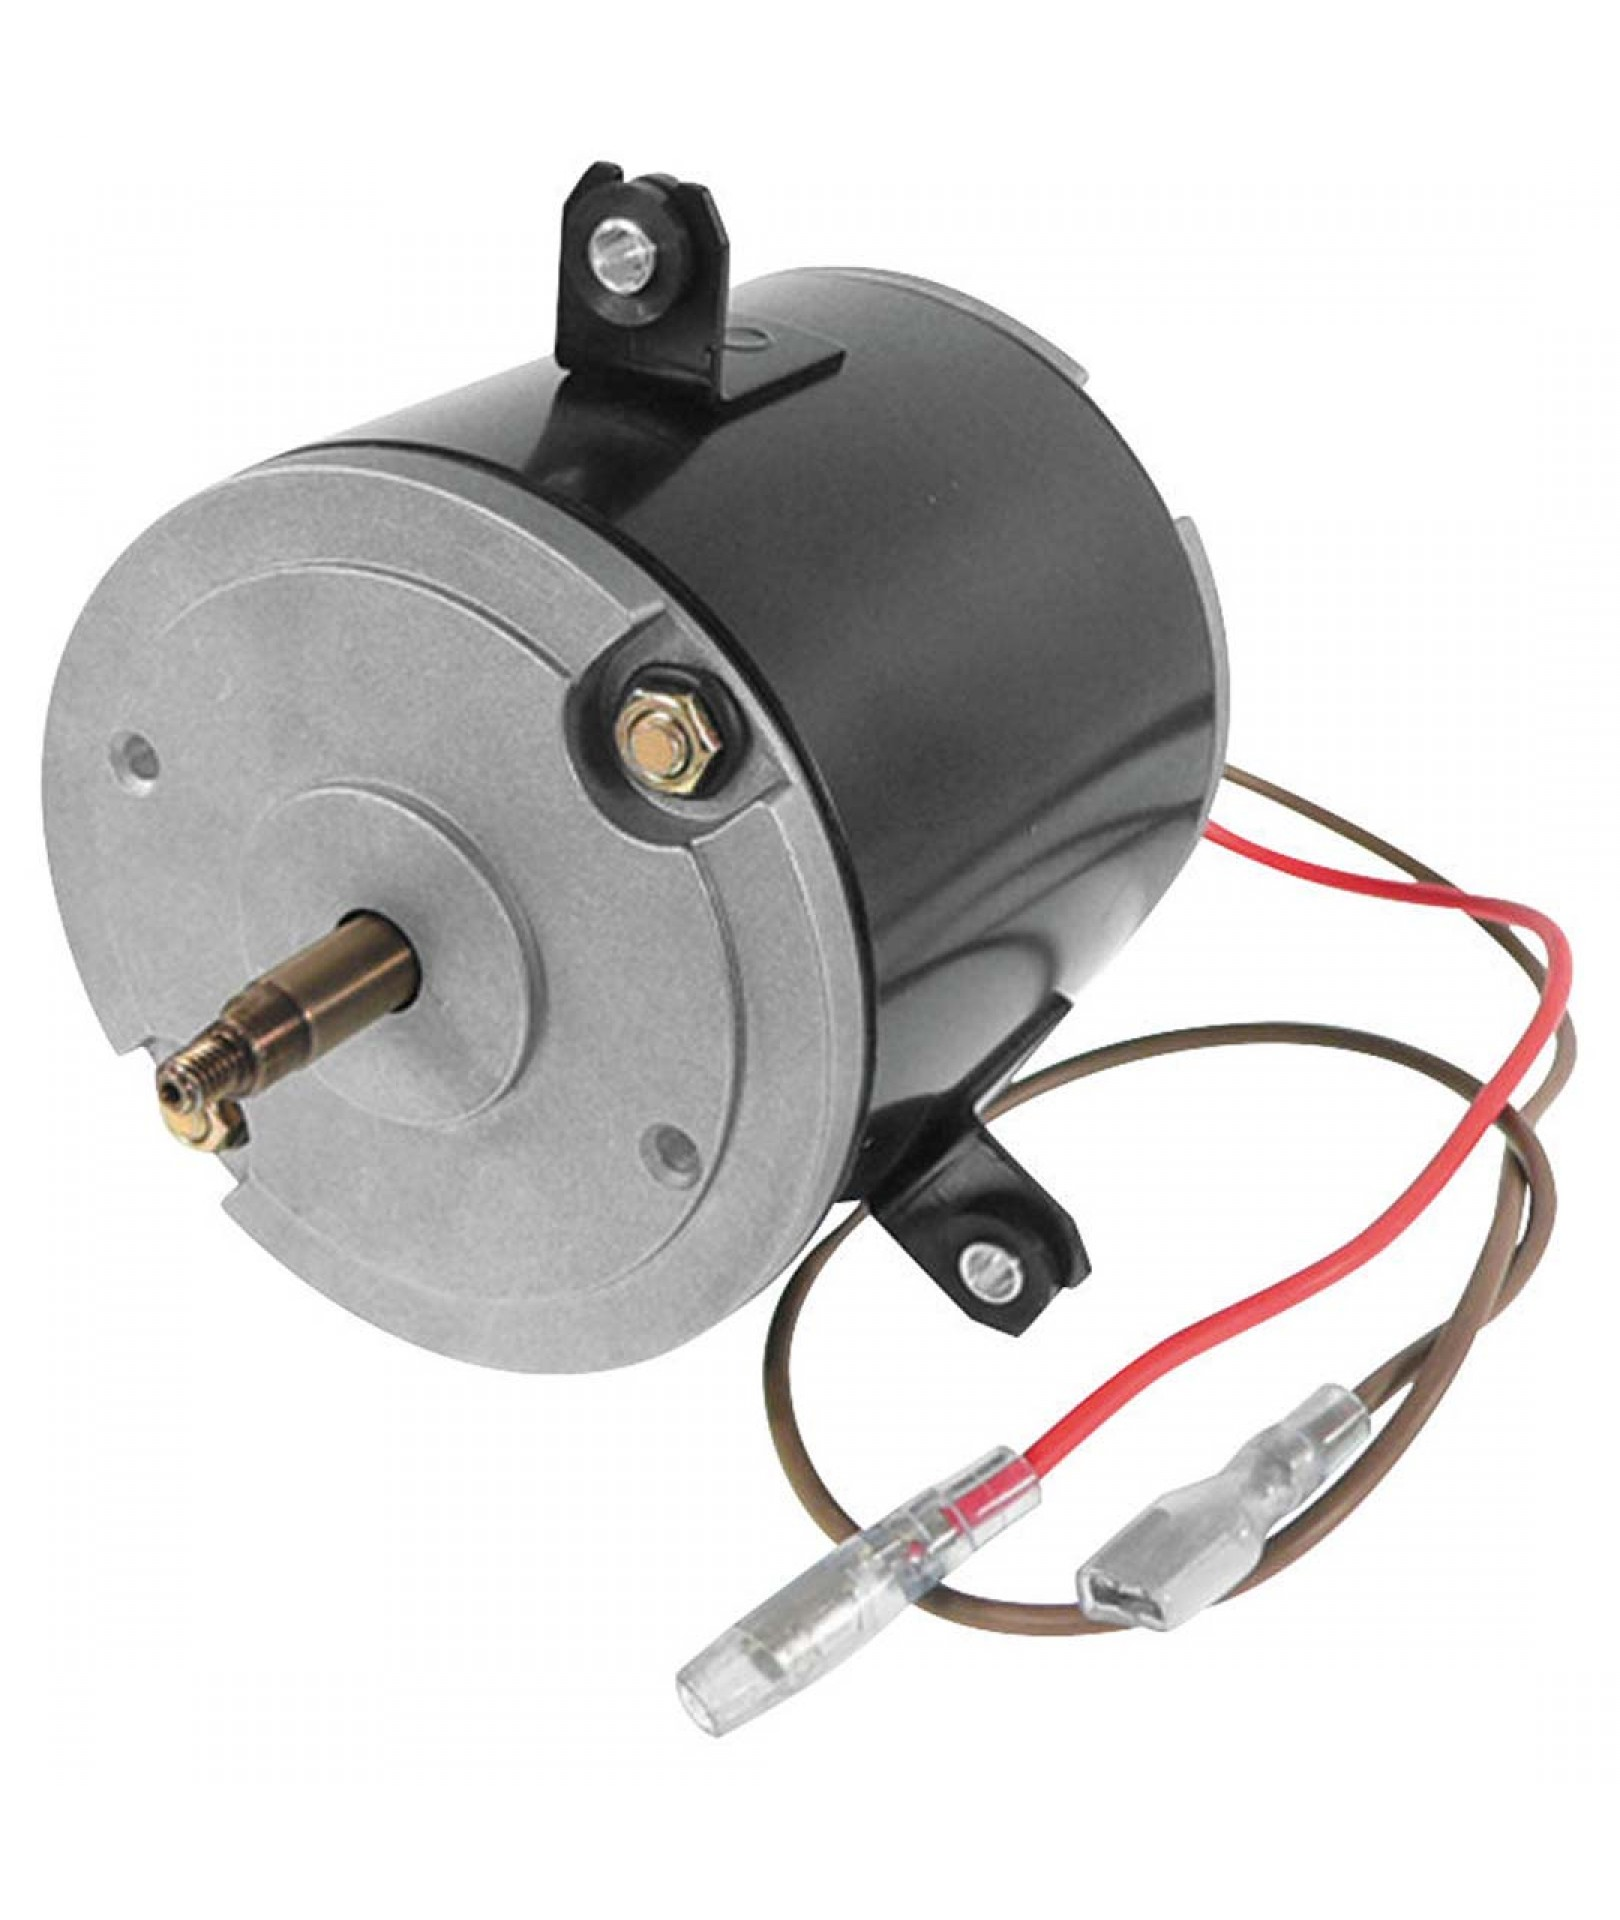 Fan Motor Product : Cooling fan motor only products